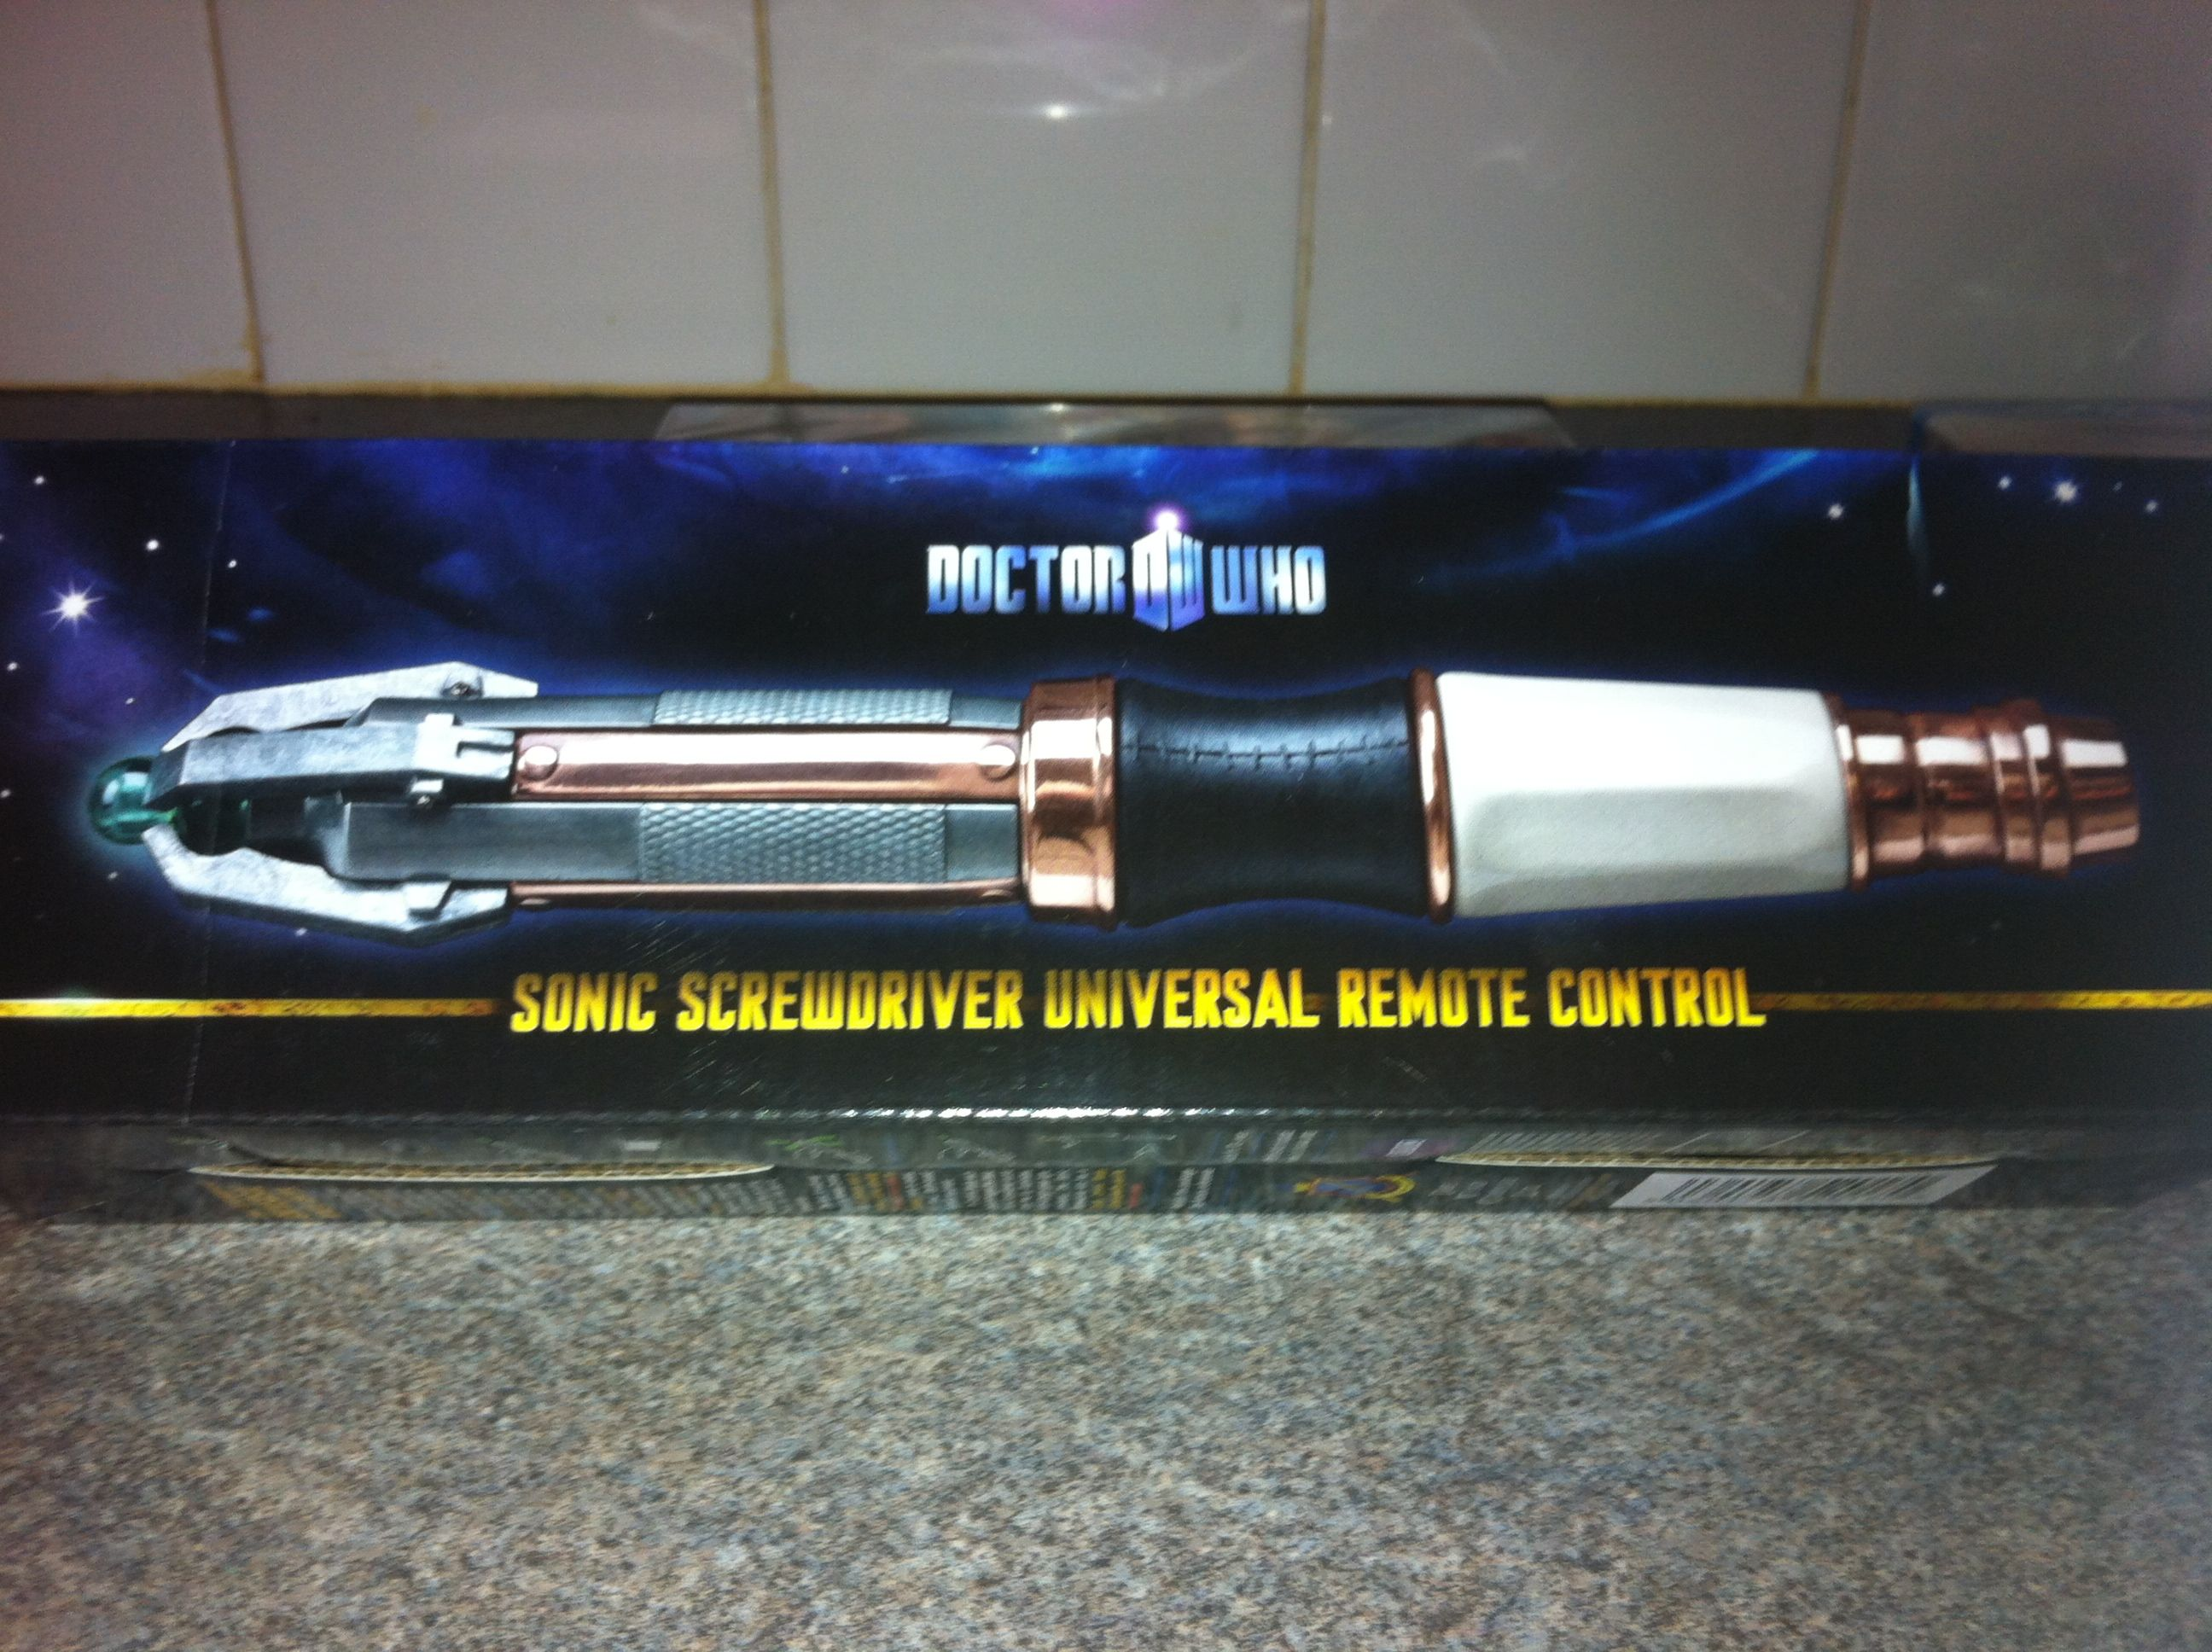 Dr Who TV remote! Awesome :-)